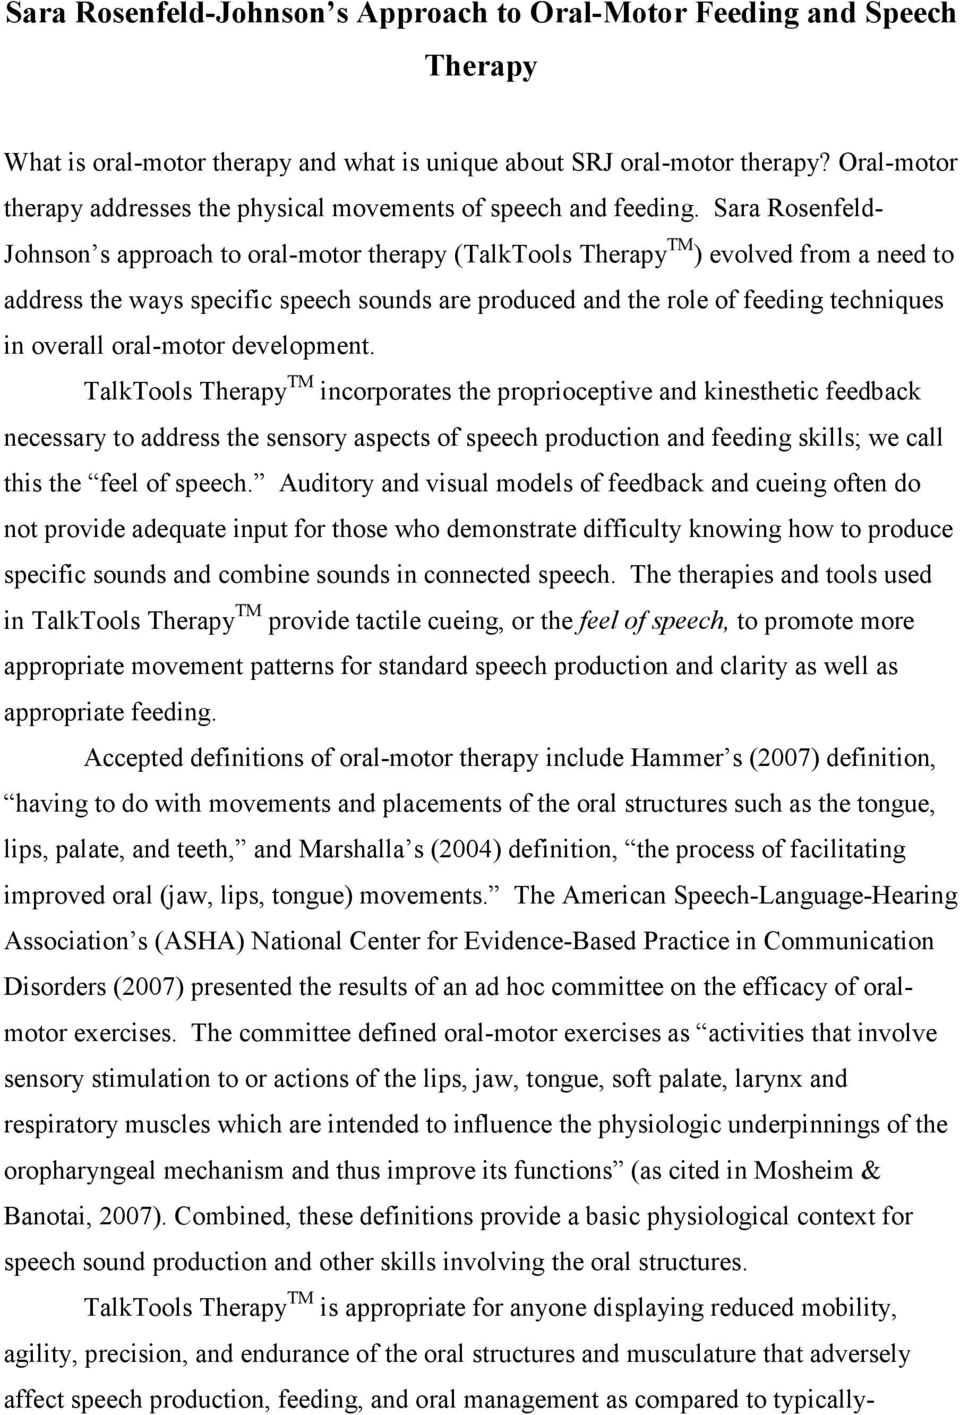 Sara Rosenfeld- Johnson s approach to oral-motor therapy (TalkTools Therapy TM ) evolved from a need to address the ways specific speech sounds are produced and the role of feeding techniques in